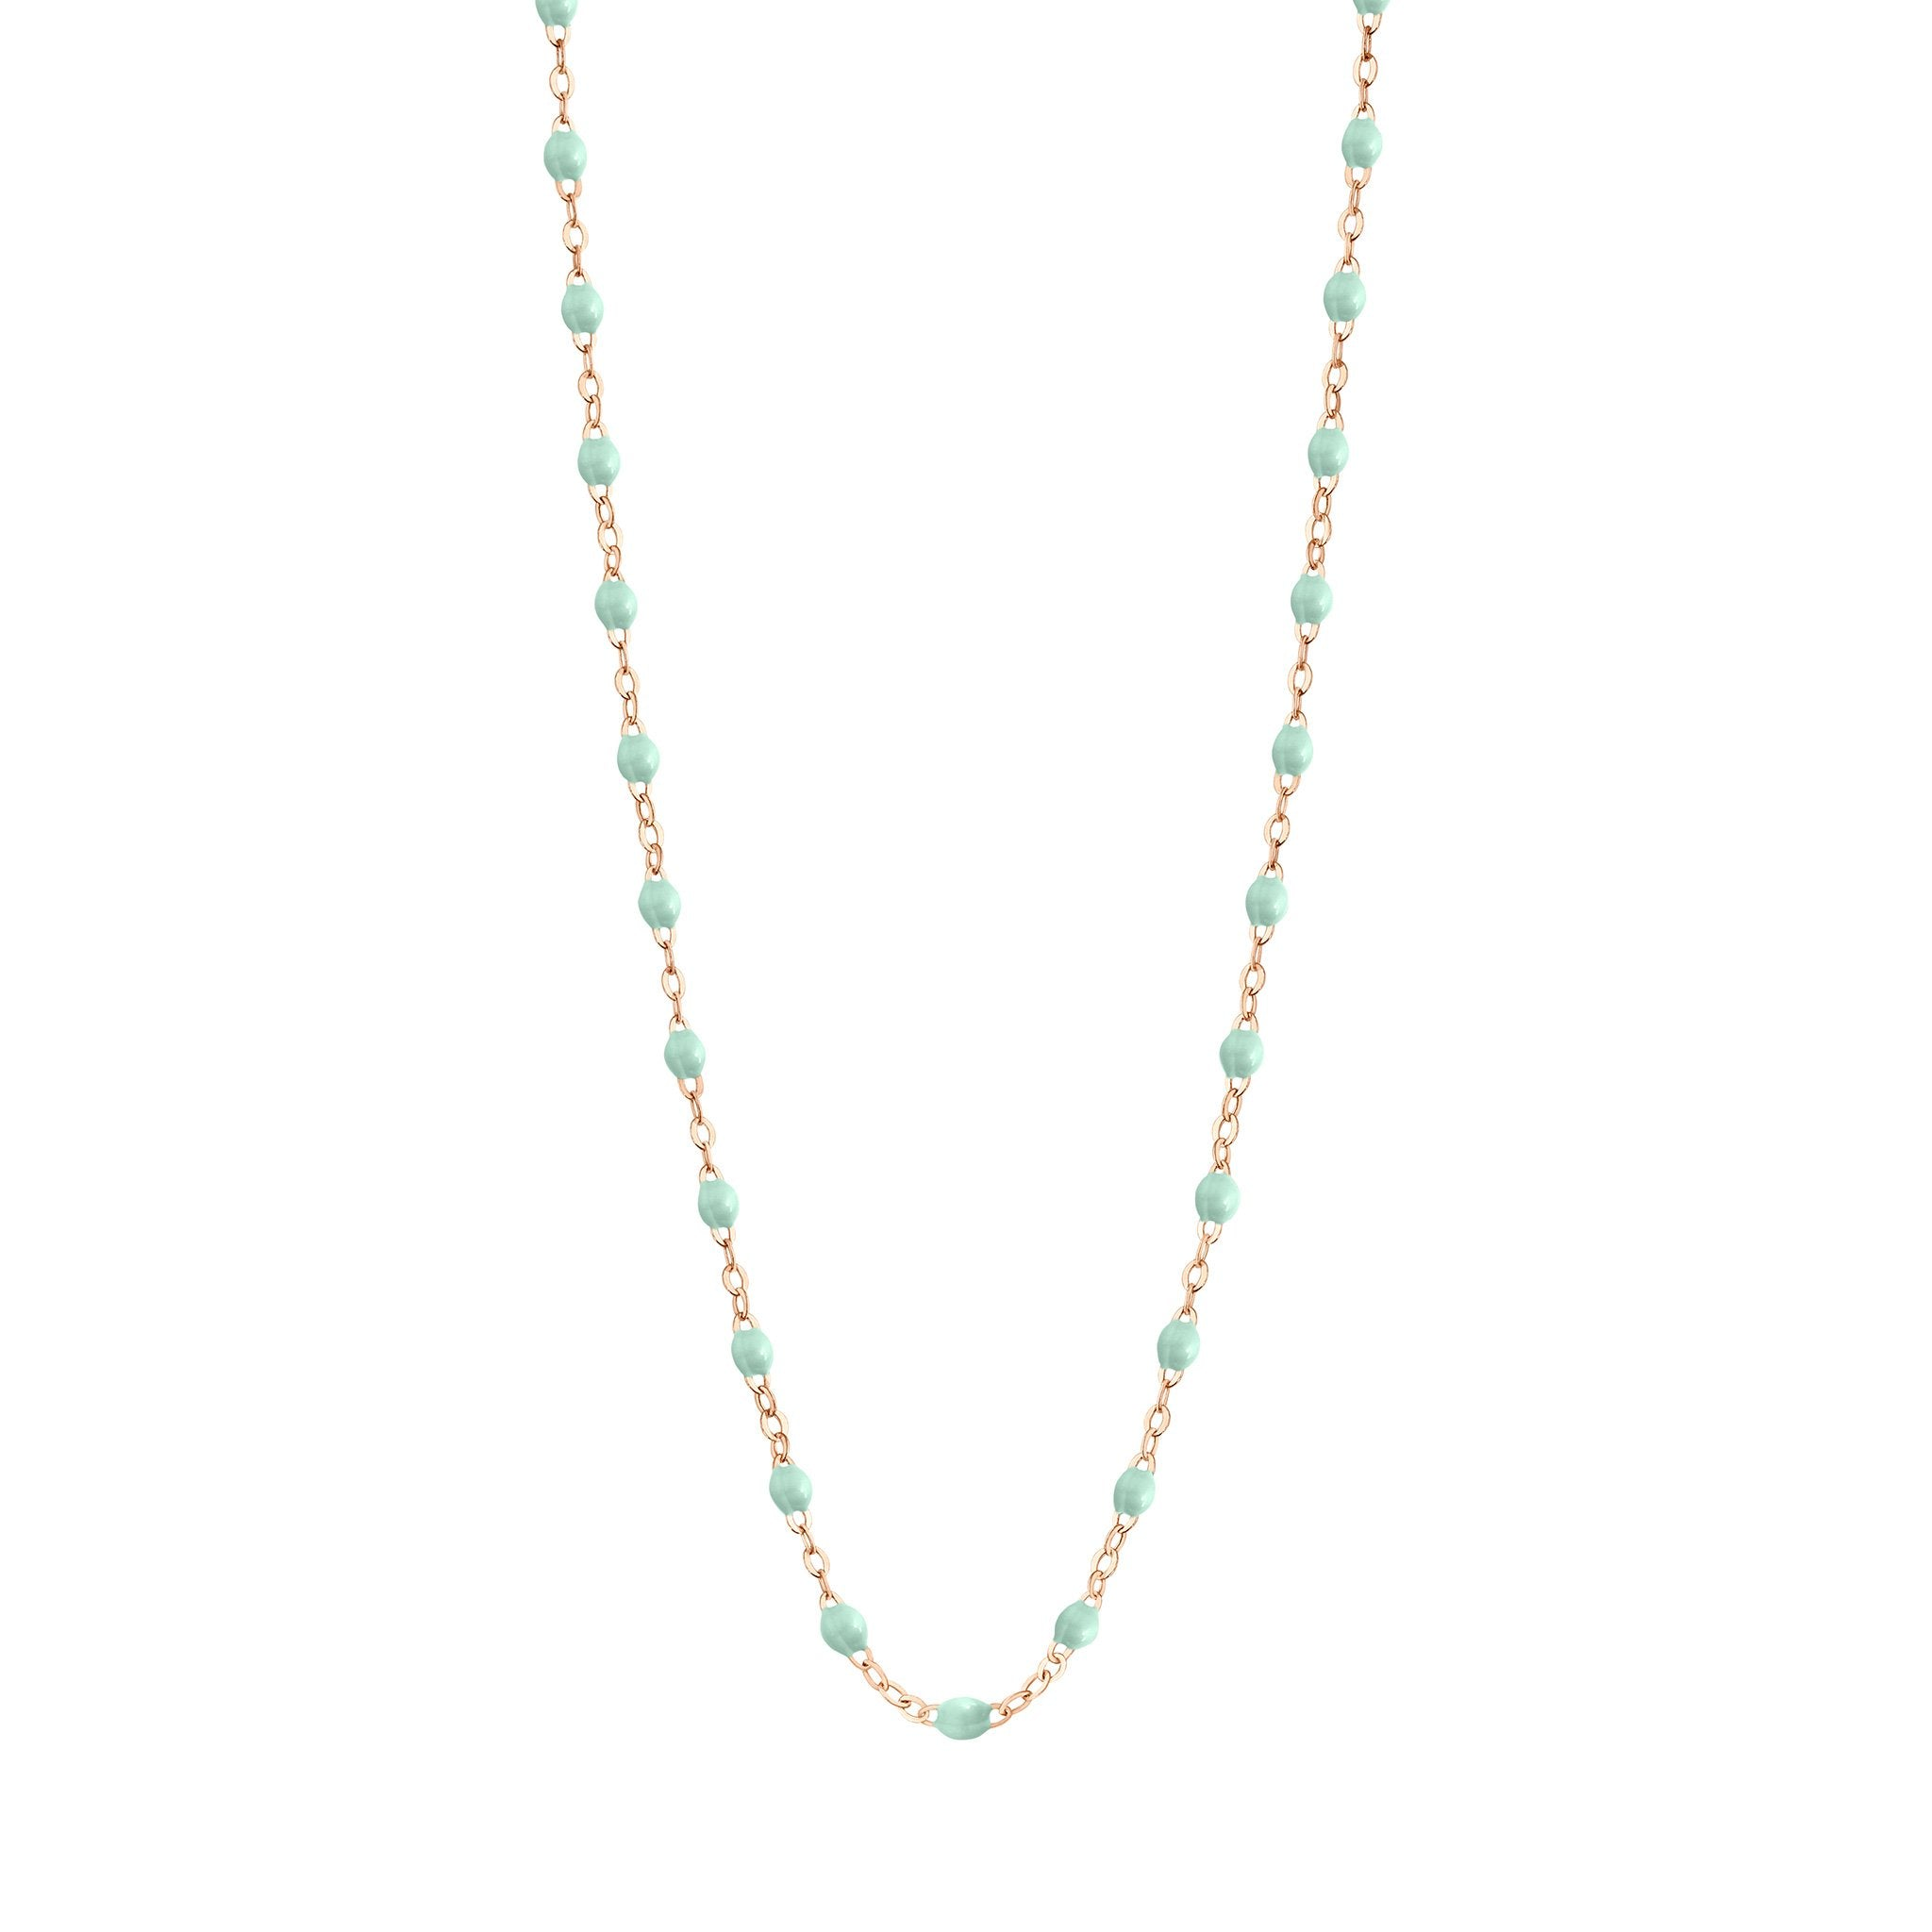 Gigi Clozeau - Classic Gigi Jade necklace, Rose Gold, 19.7